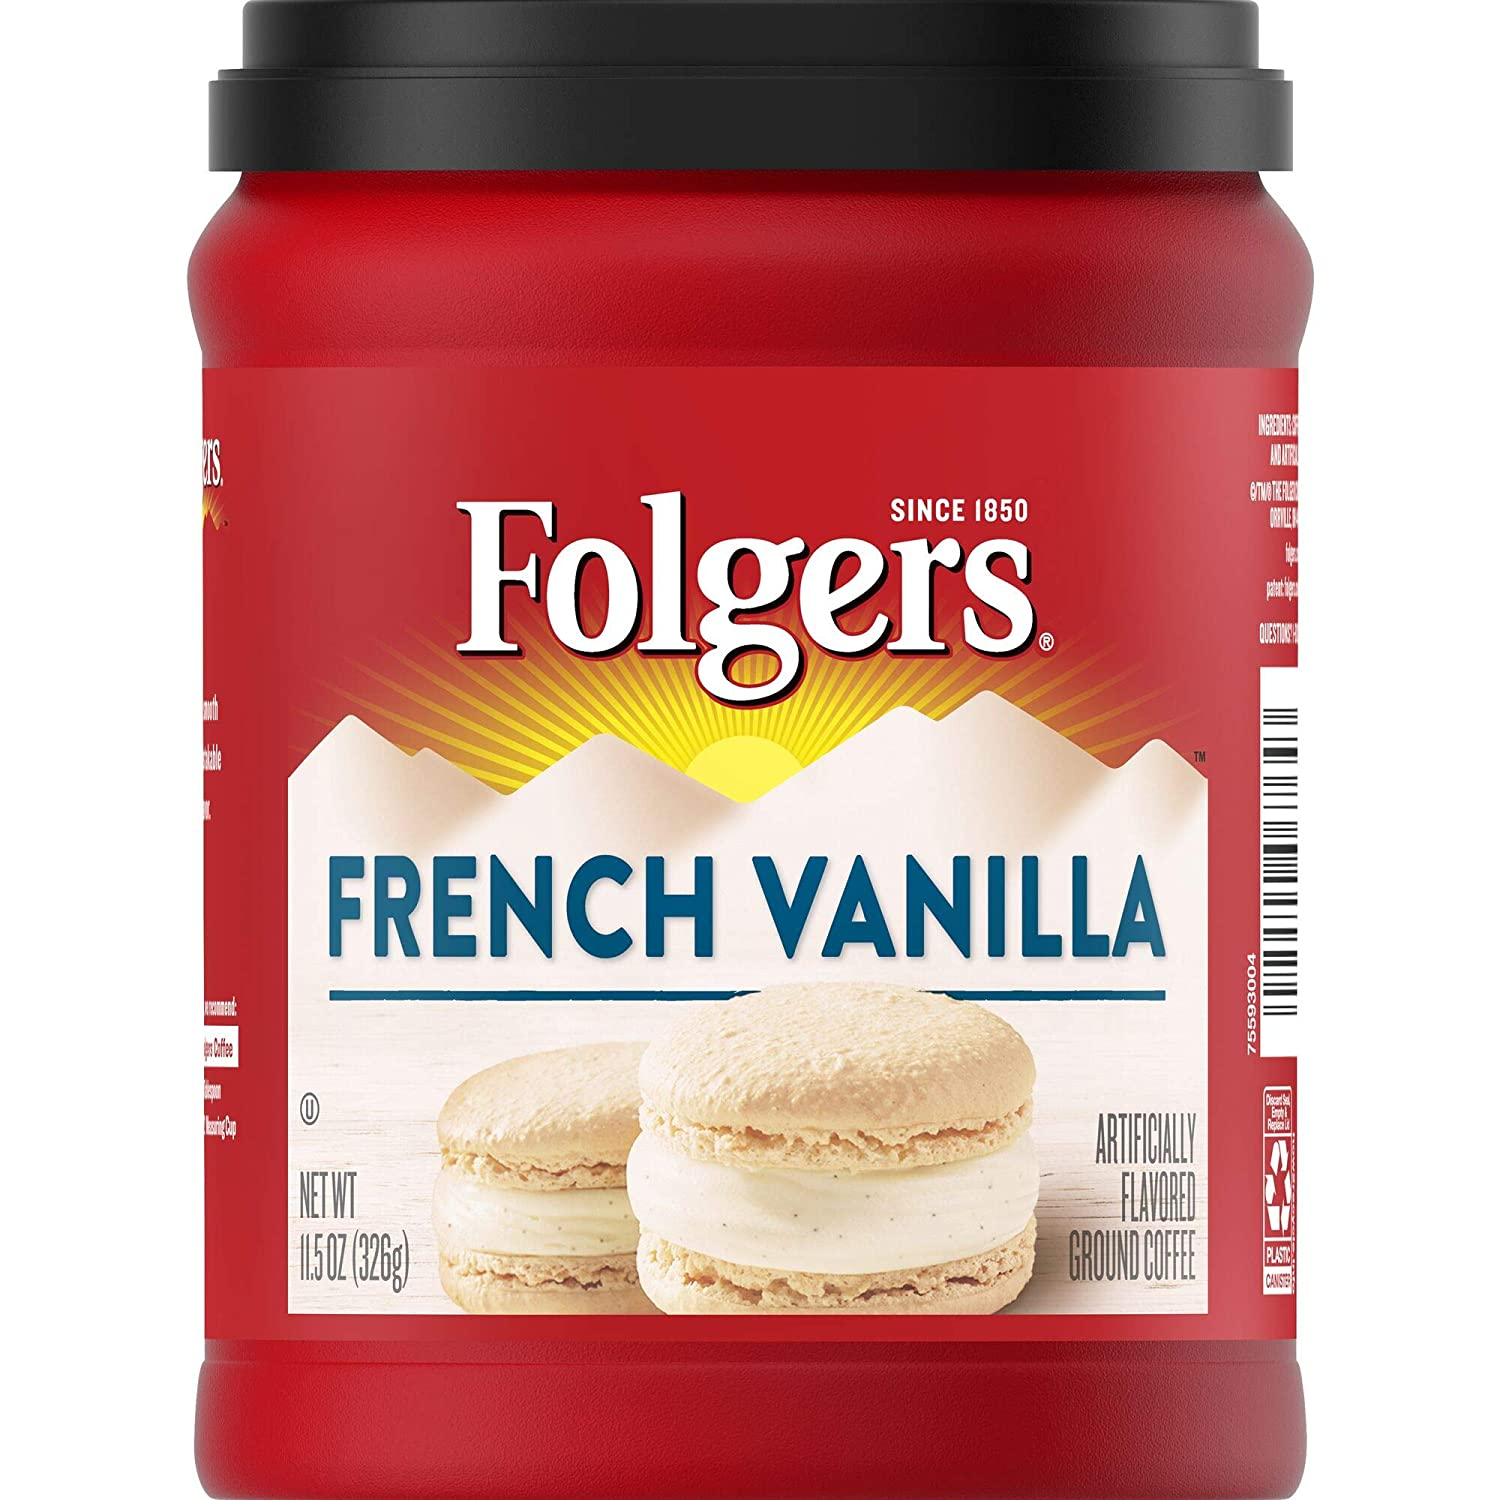 Folgers French Vanilla Flavored Ground Coffee, 11.5 Ounces